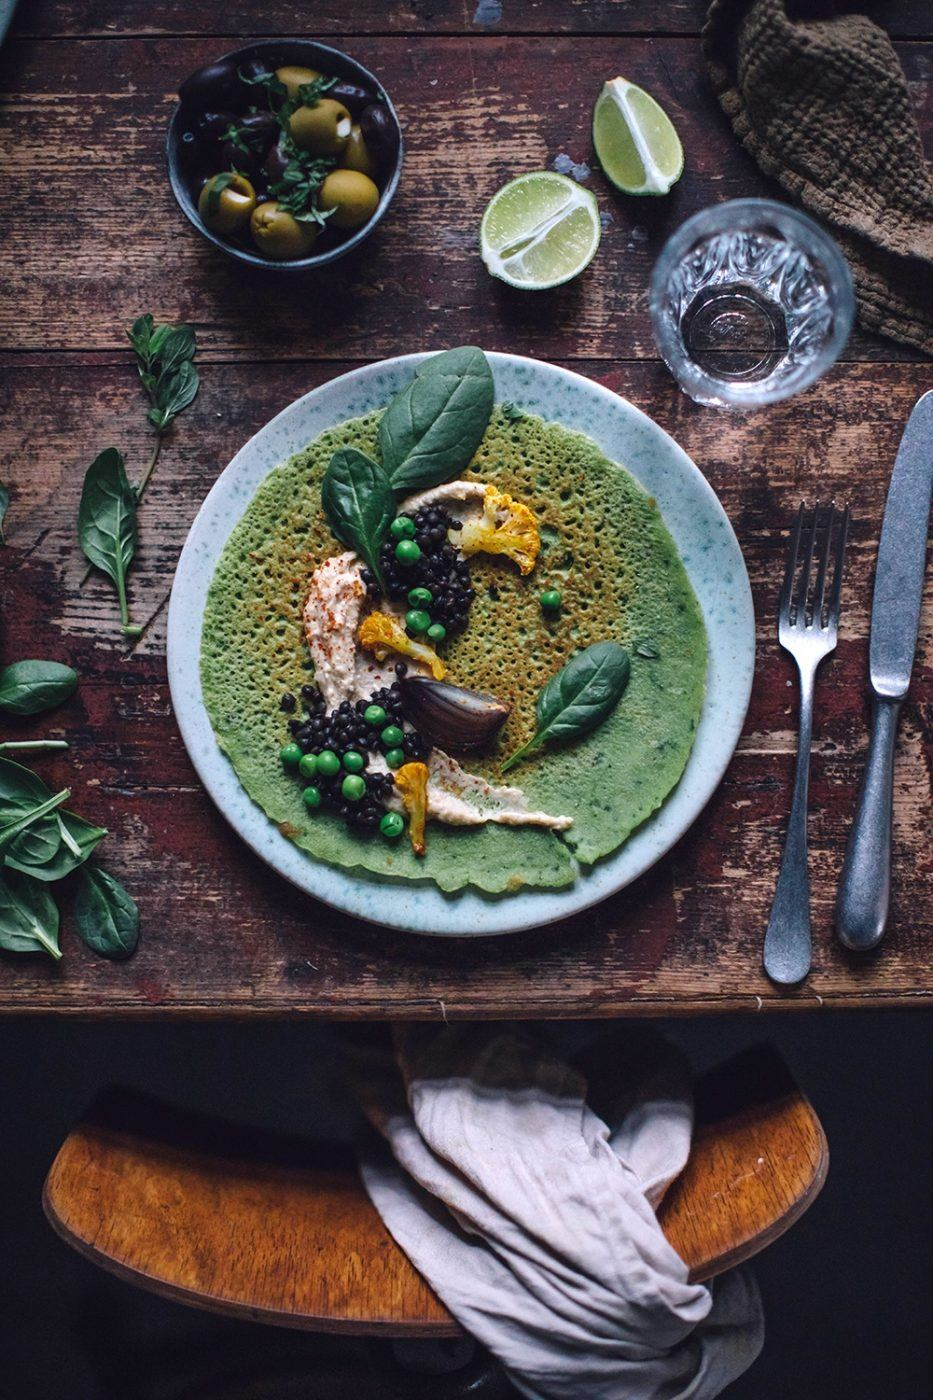 Image for Gluten-free Peas Basil Crêpes with Hummus, lentils and roasted cauliflower